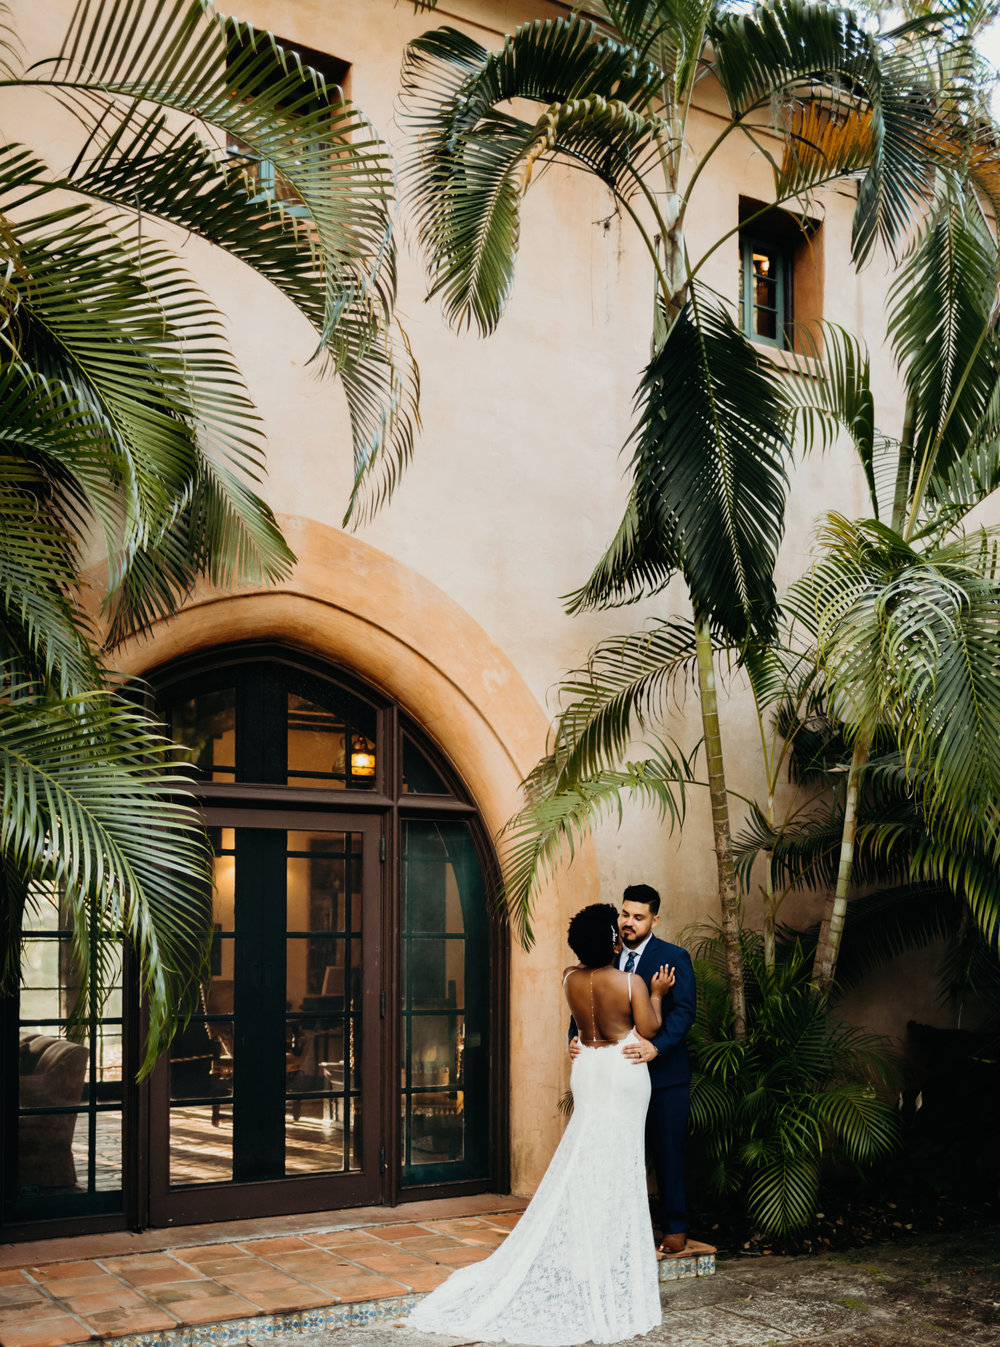 Jose and Valerie | Wedding | Bok Tower Gardens | Photography by Vanessa Boy (785 of 204)final.jpg